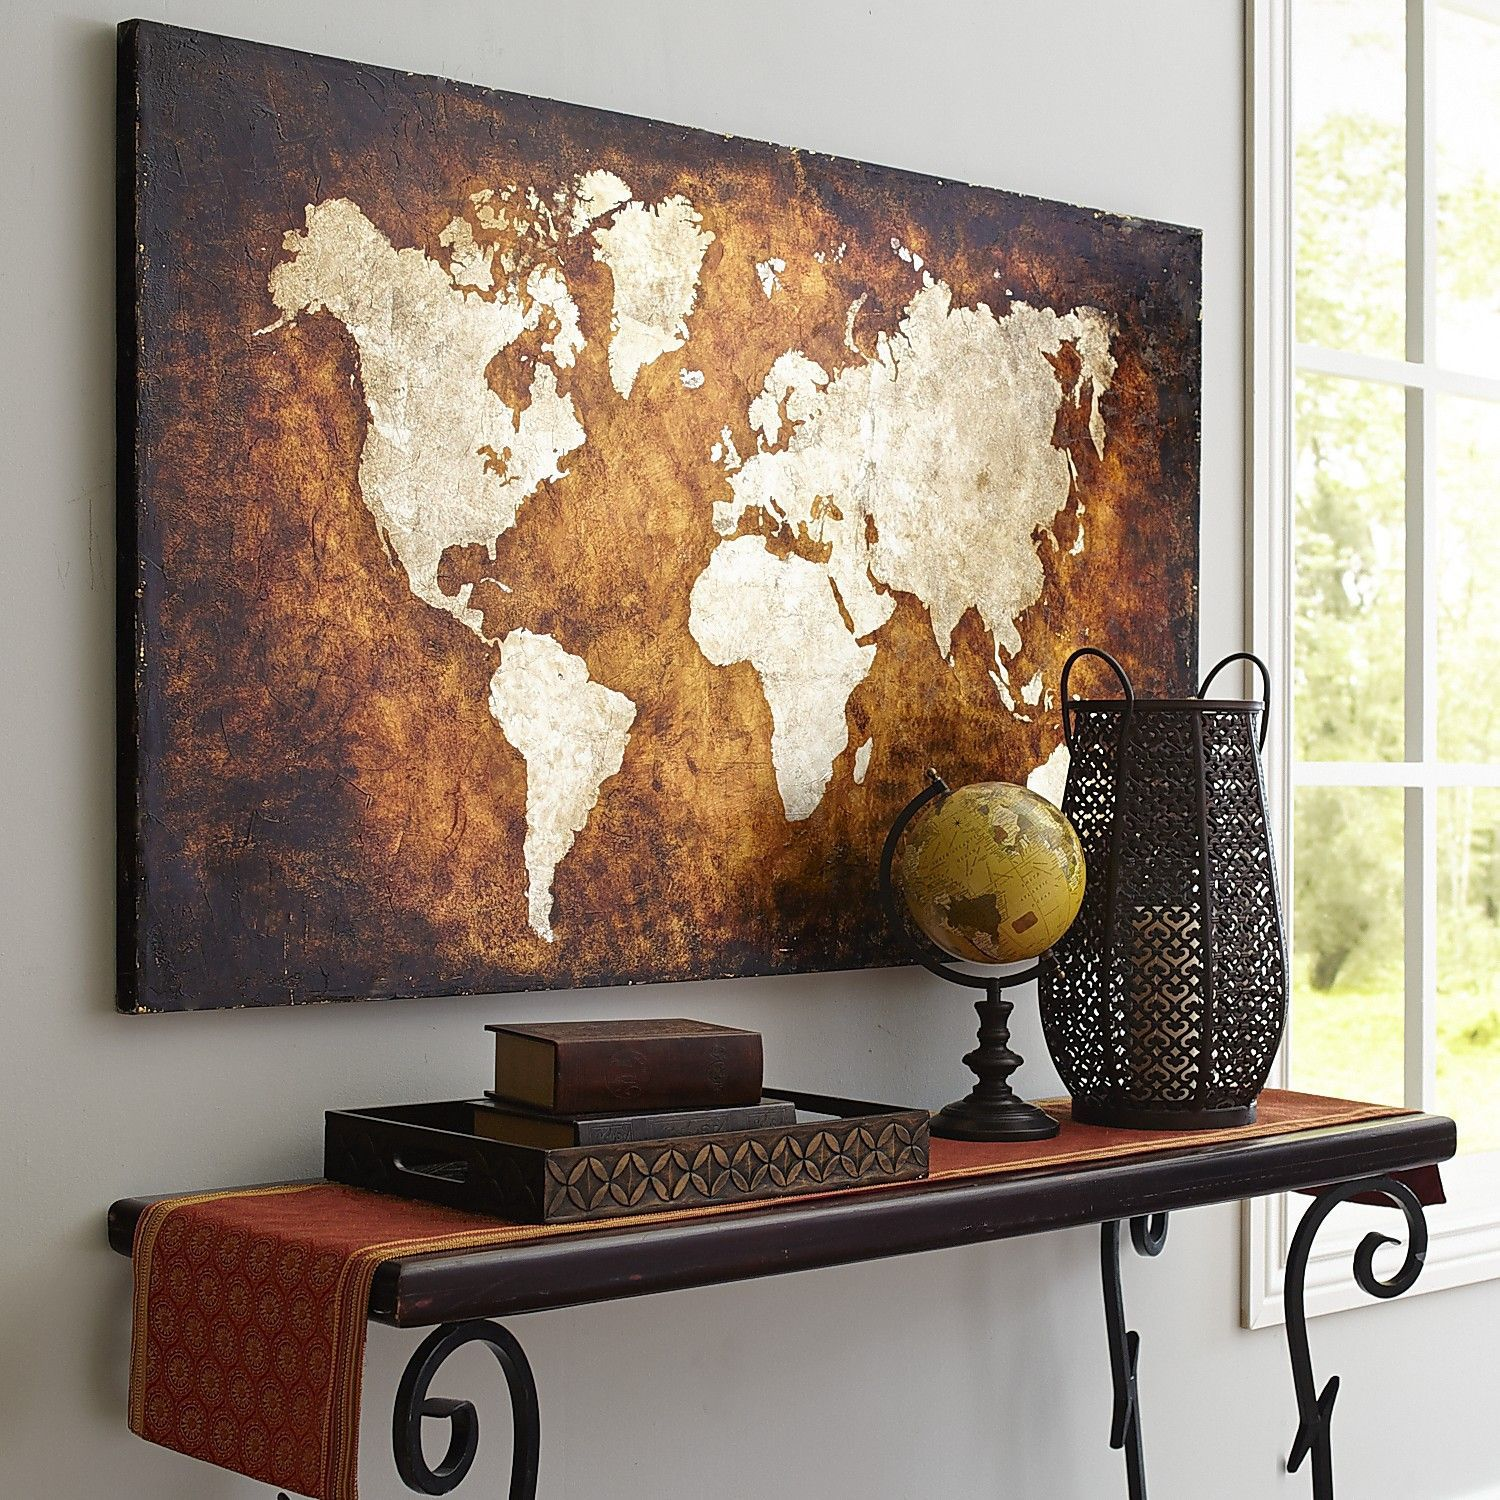 world map art bronze pier one art world map art world map decor world map painting. Black Bedroom Furniture Sets. Home Design Ideas